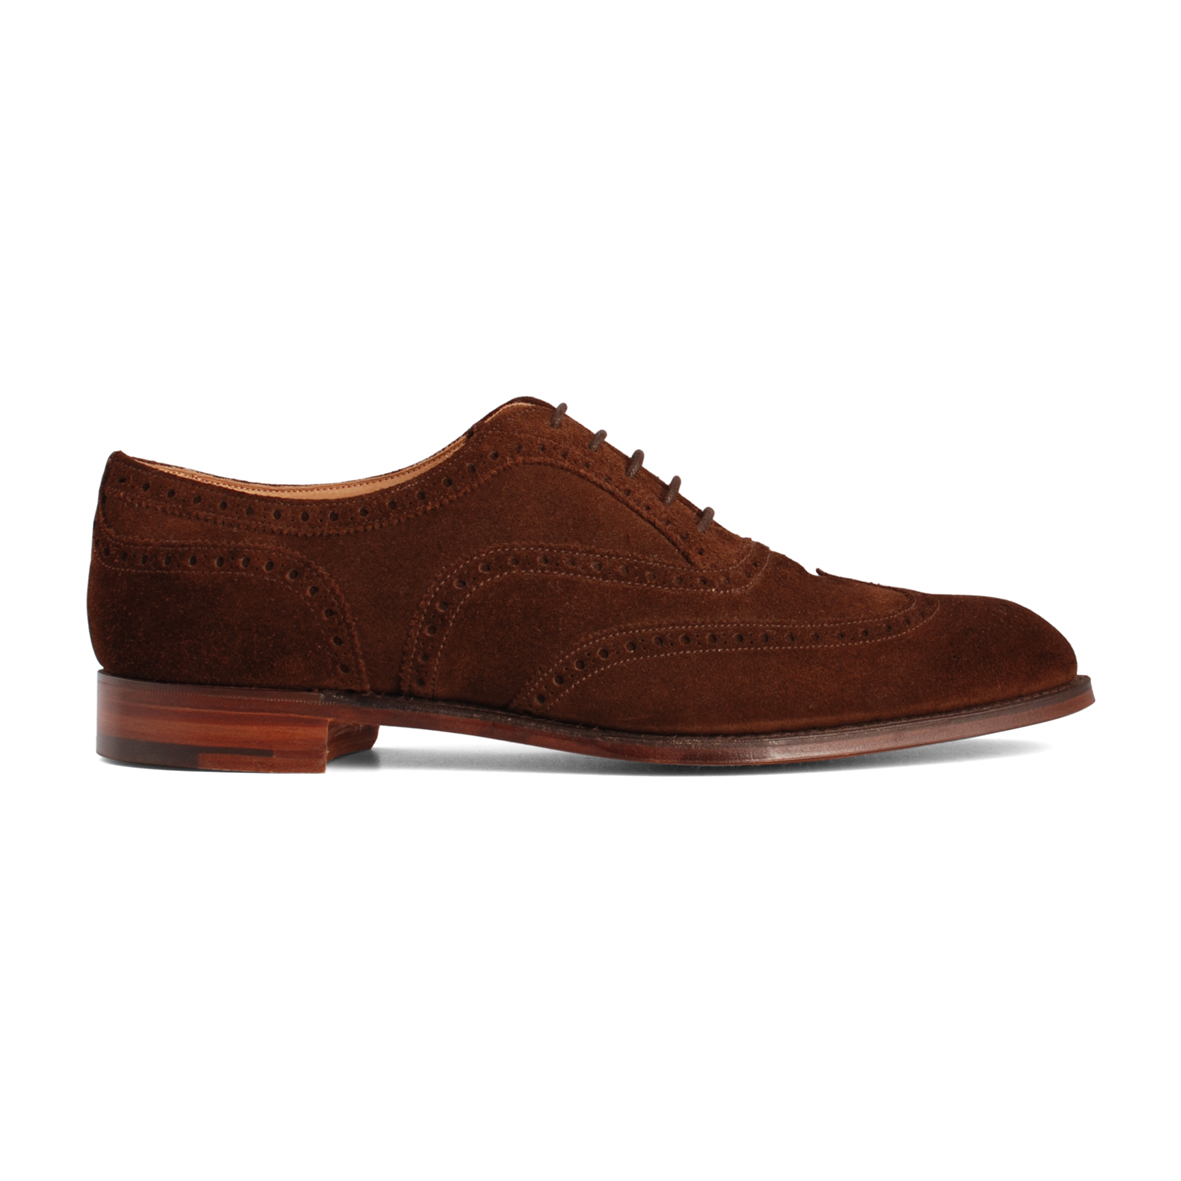 Cheaney Arthur III Plough Suede shoes